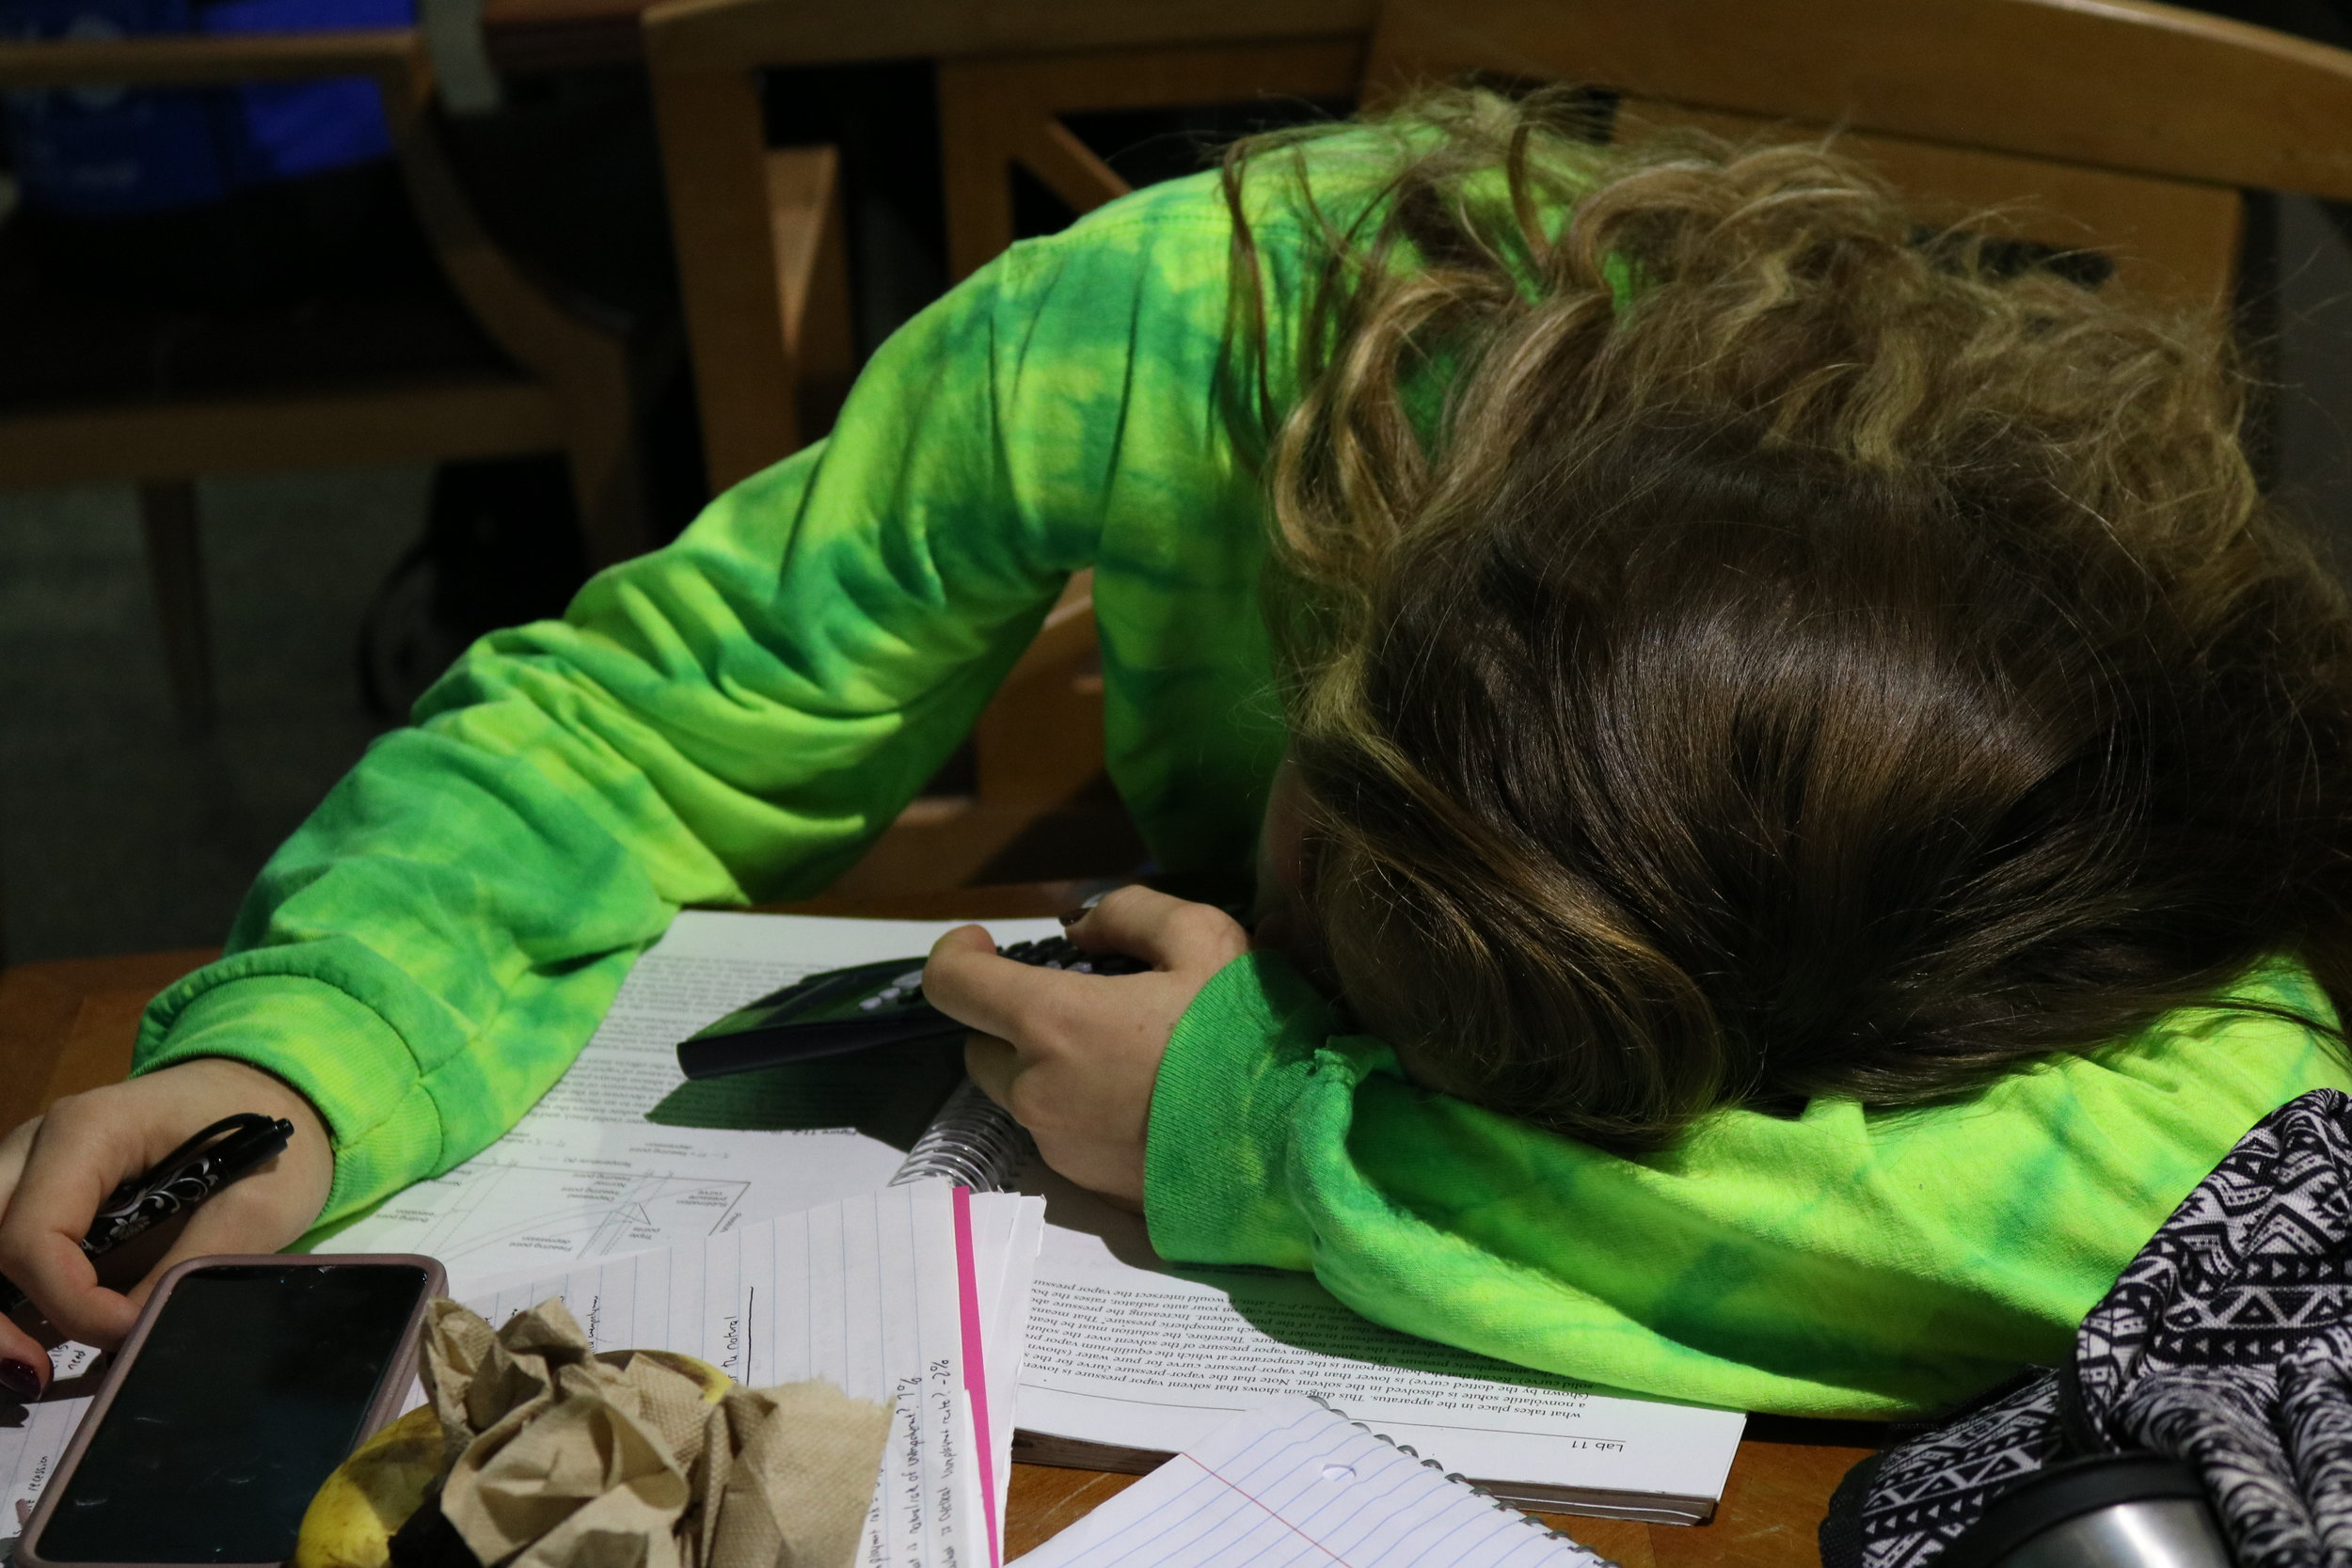 When attempting to sleep, a persistent busy mind, tense muscles and a racing heart are all physical indicators that a person may be too stressed sleep soundly, according to the National Sleep Foundation. (Vanita Patel/The Daily Campus)